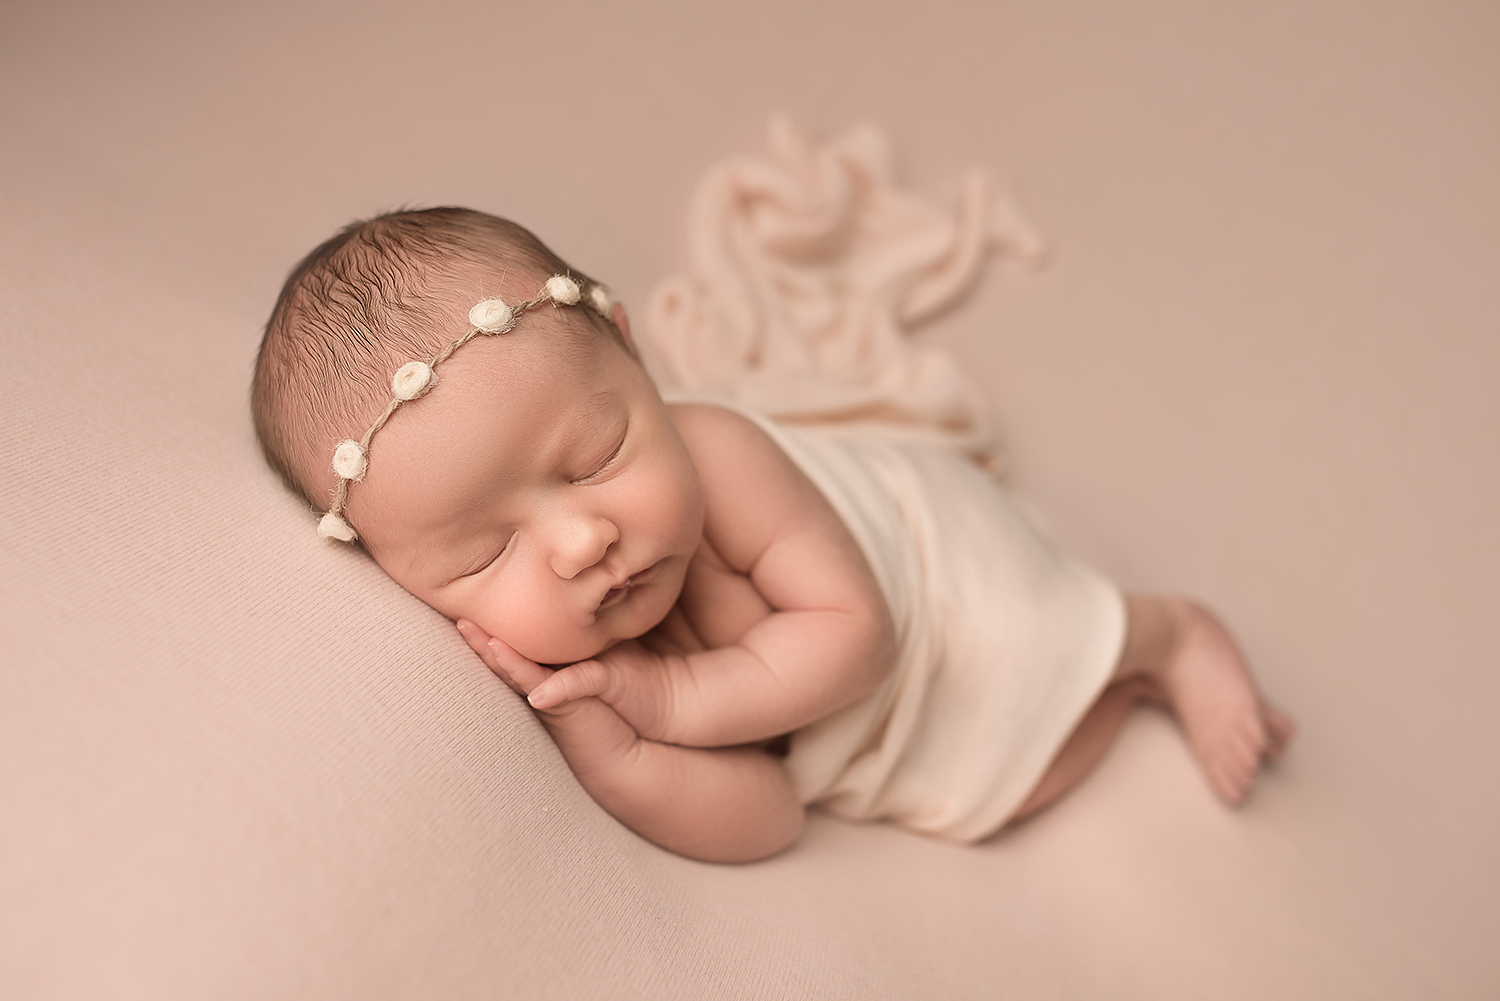 Baltimore Howard County Maryland Newborn Photographer Jessica Fenfert baby girl on pink